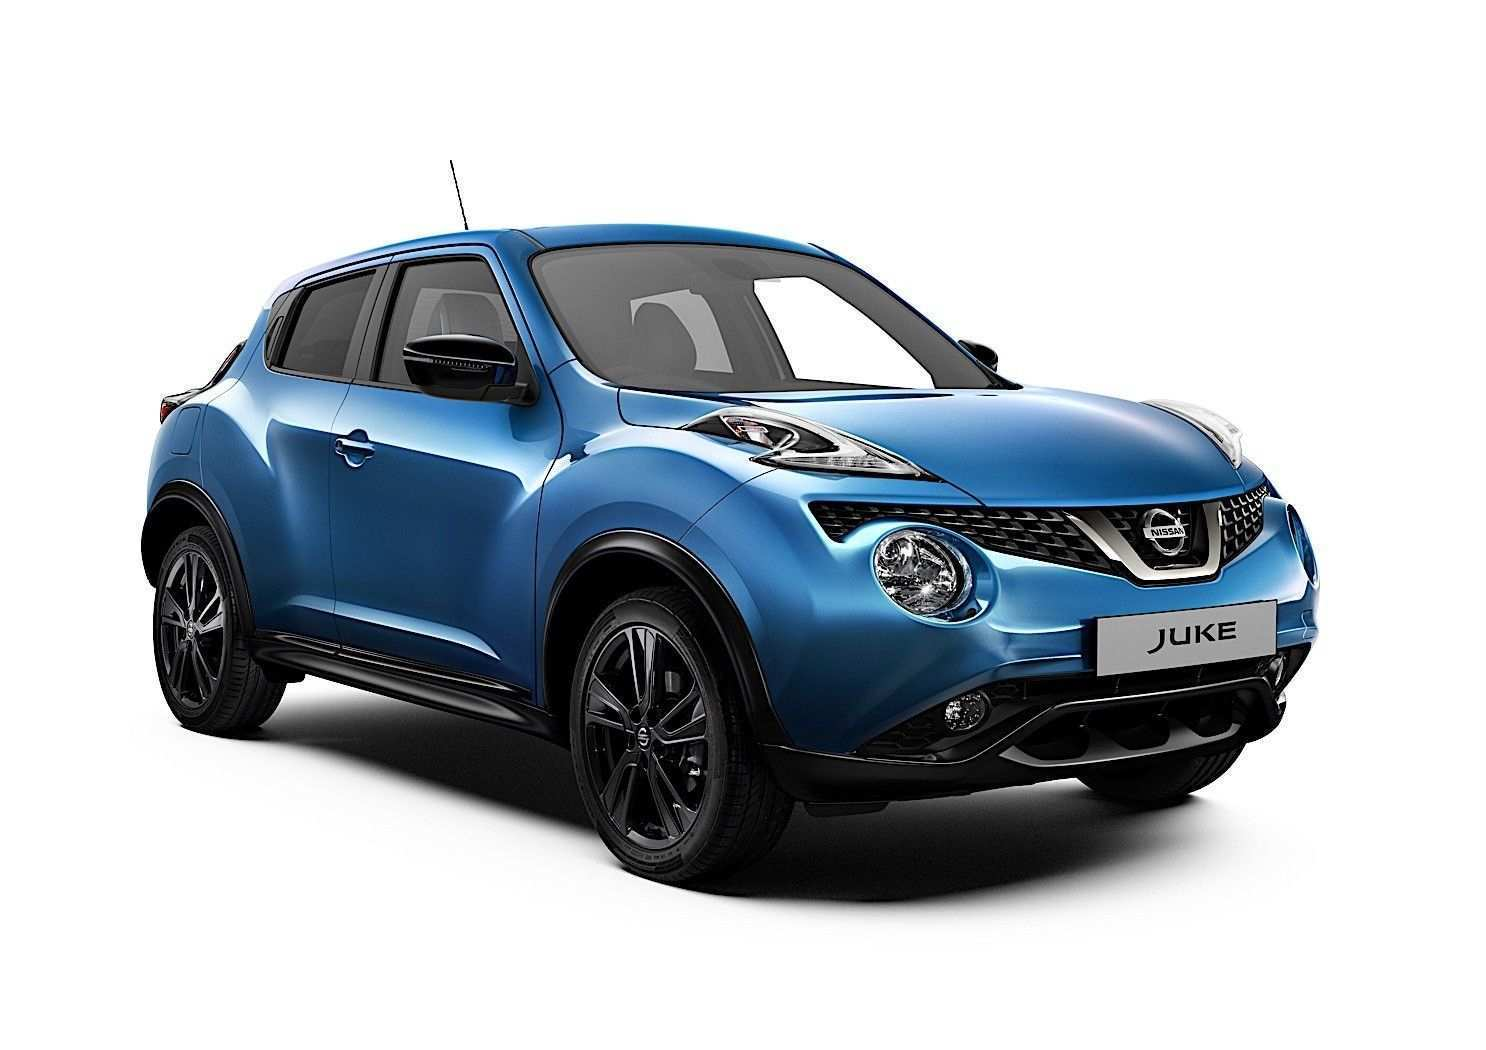 12 New Nissan Juke 2020 Exterior Date Wallpaper with Nissan Juke 2020 Exterior Date